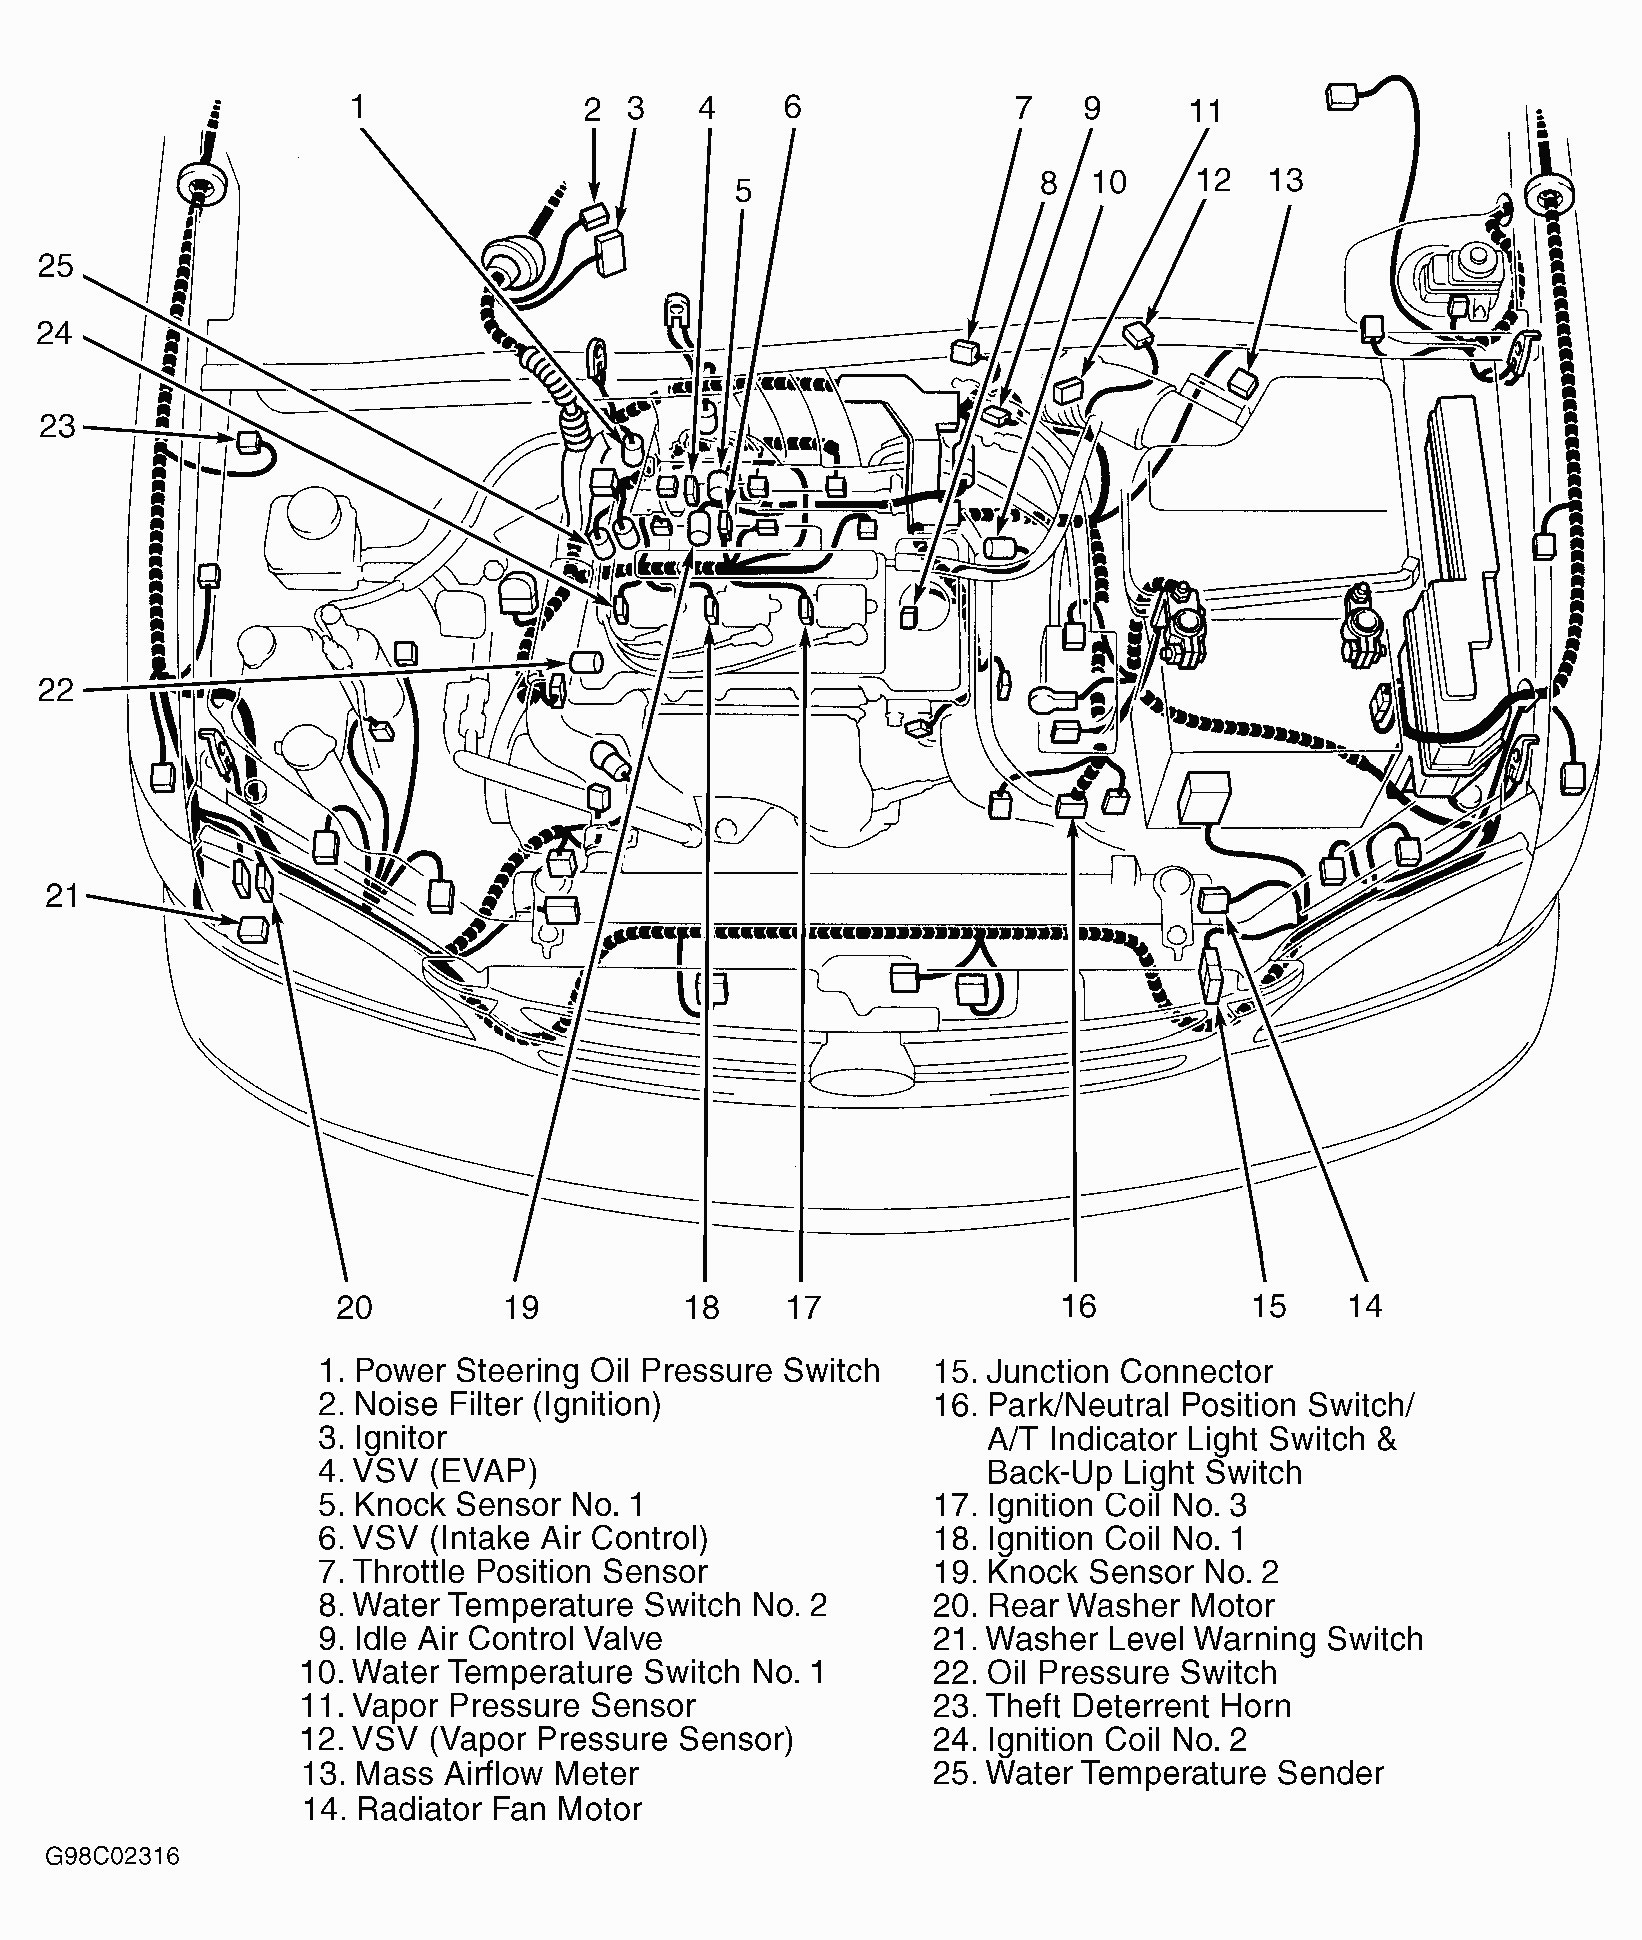 1994 Toyota Corolla Engine Diagram 1993 Wiring 2003 98 Ta A Diagrams Instructions Of